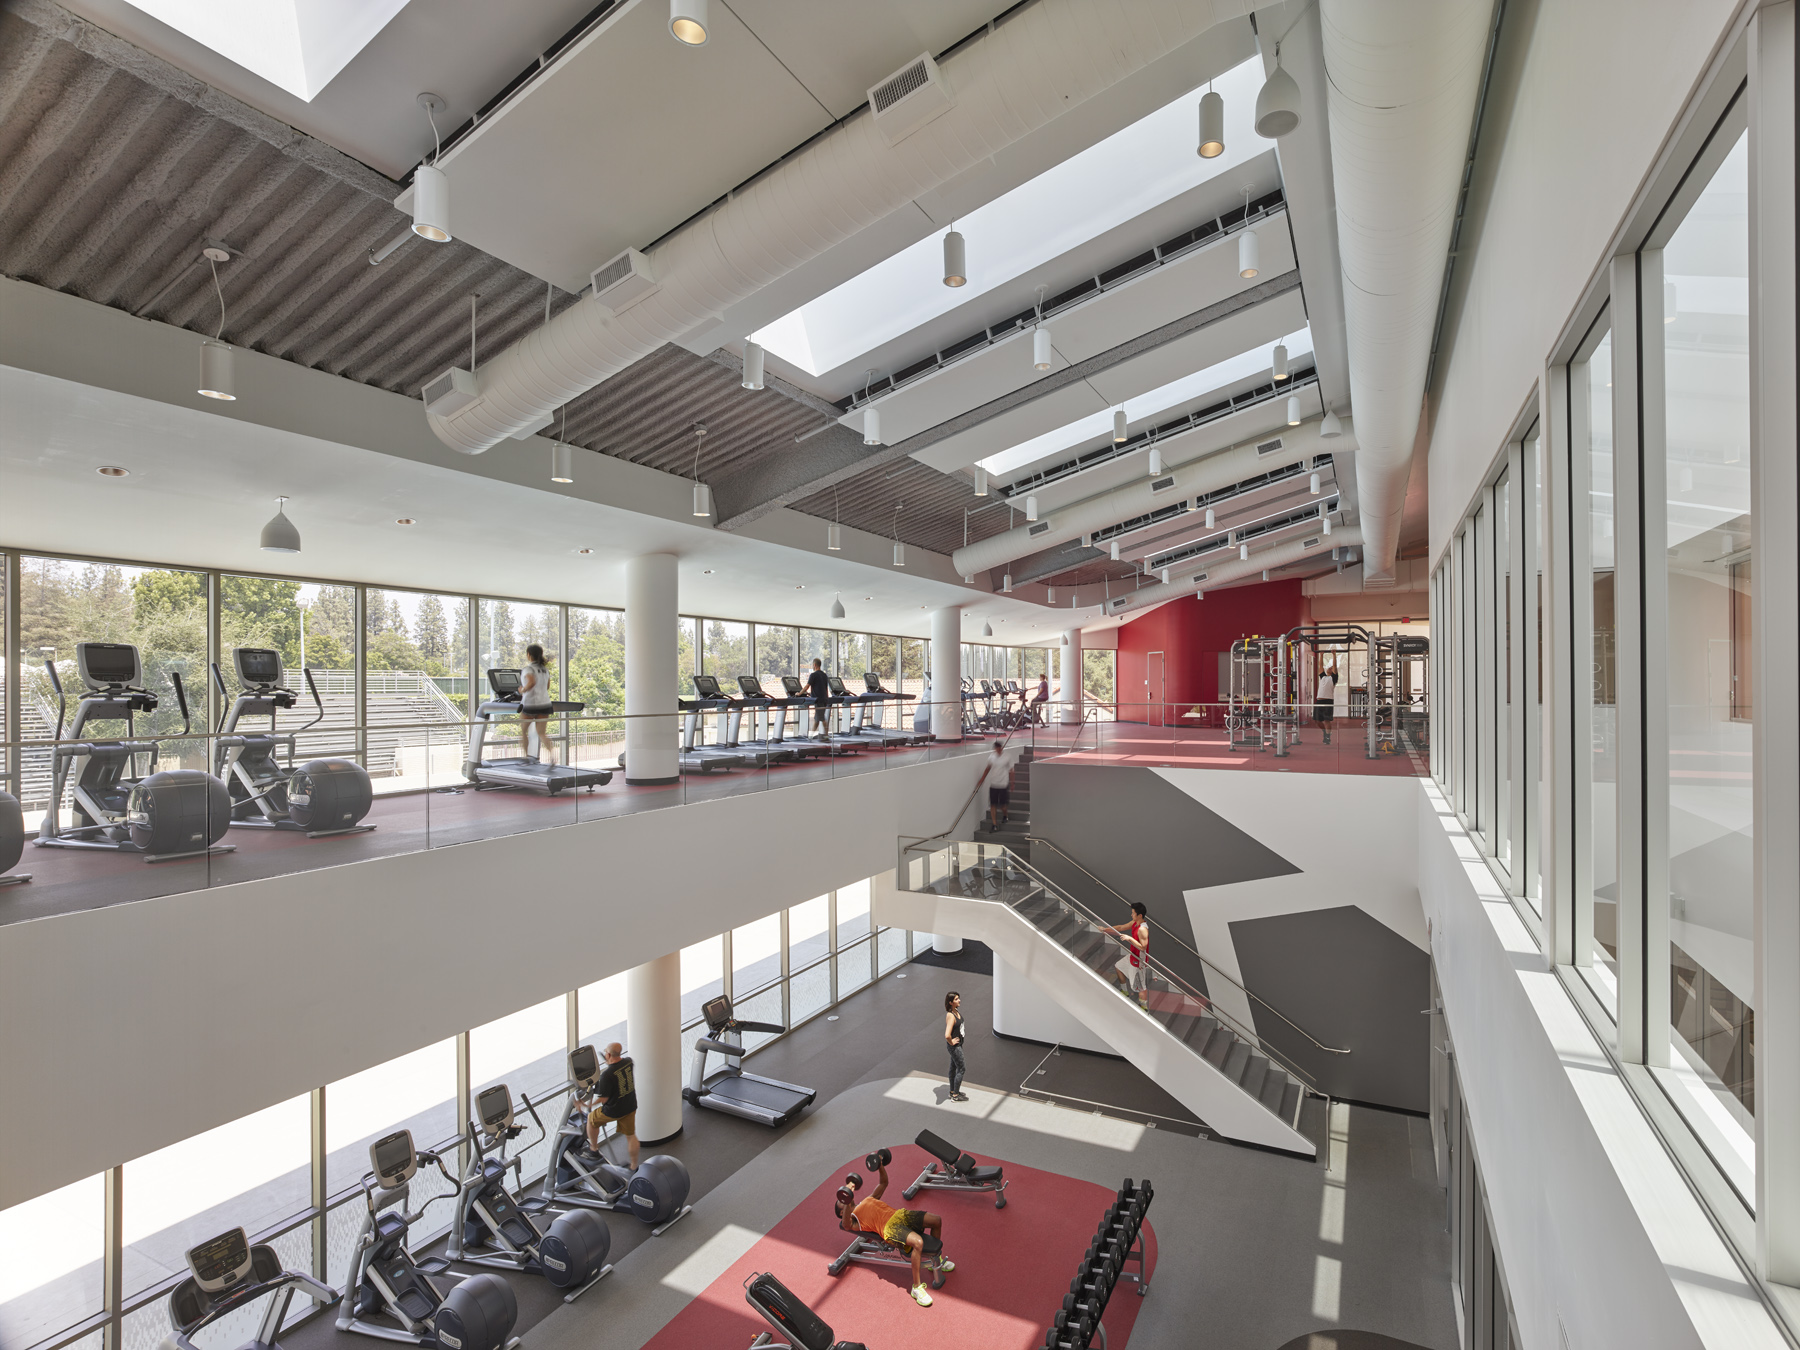 Fitness center from second level